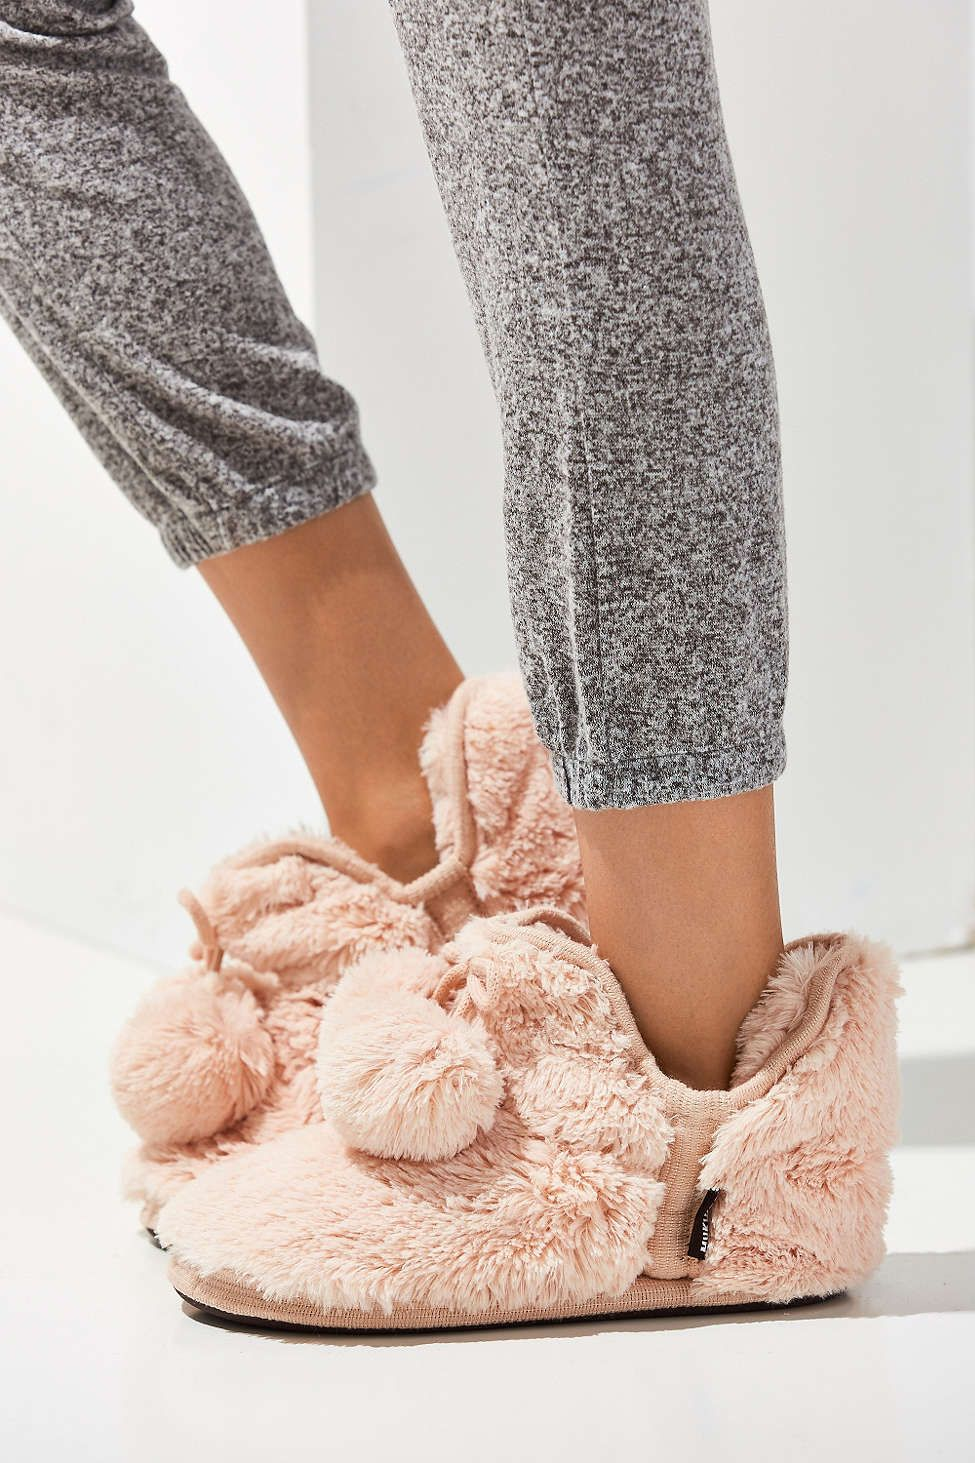 Baby Girl Bedroom Slippers: MUK LUKS Fuzzy Amira Slipper